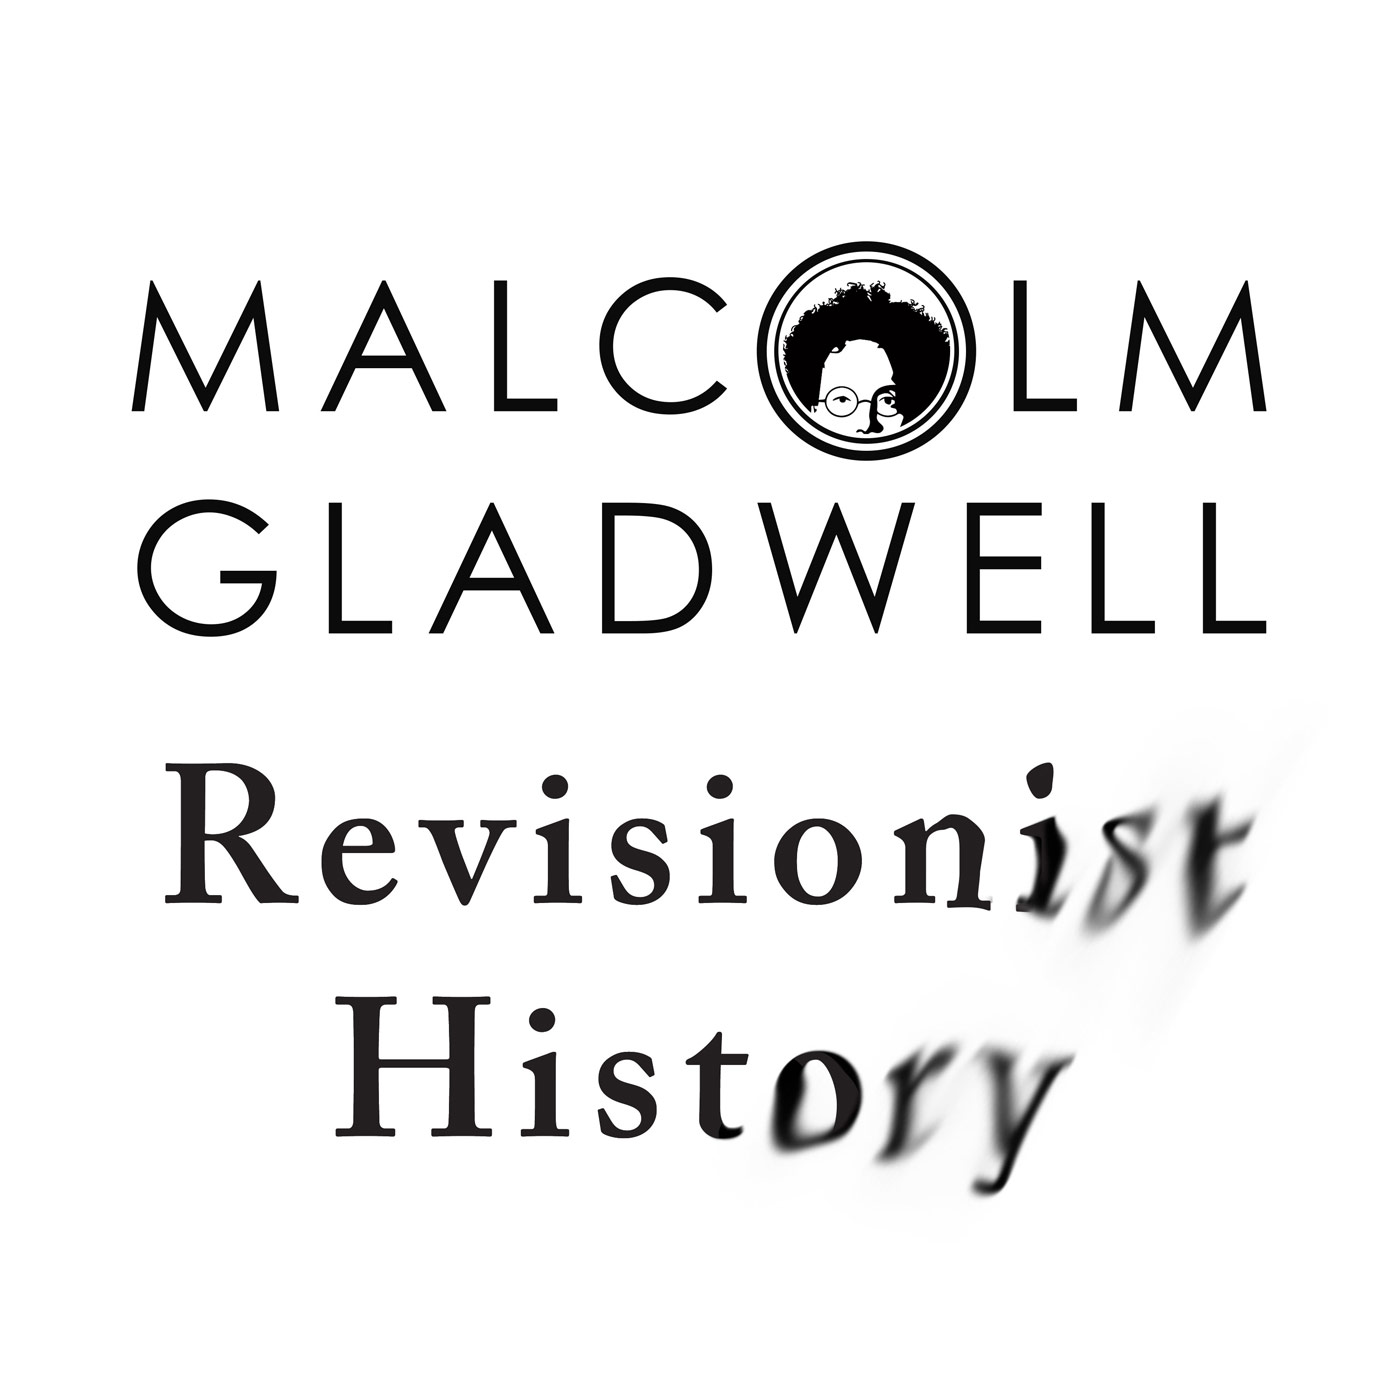 Malcolm Gladwell Revisionist History - From the author: